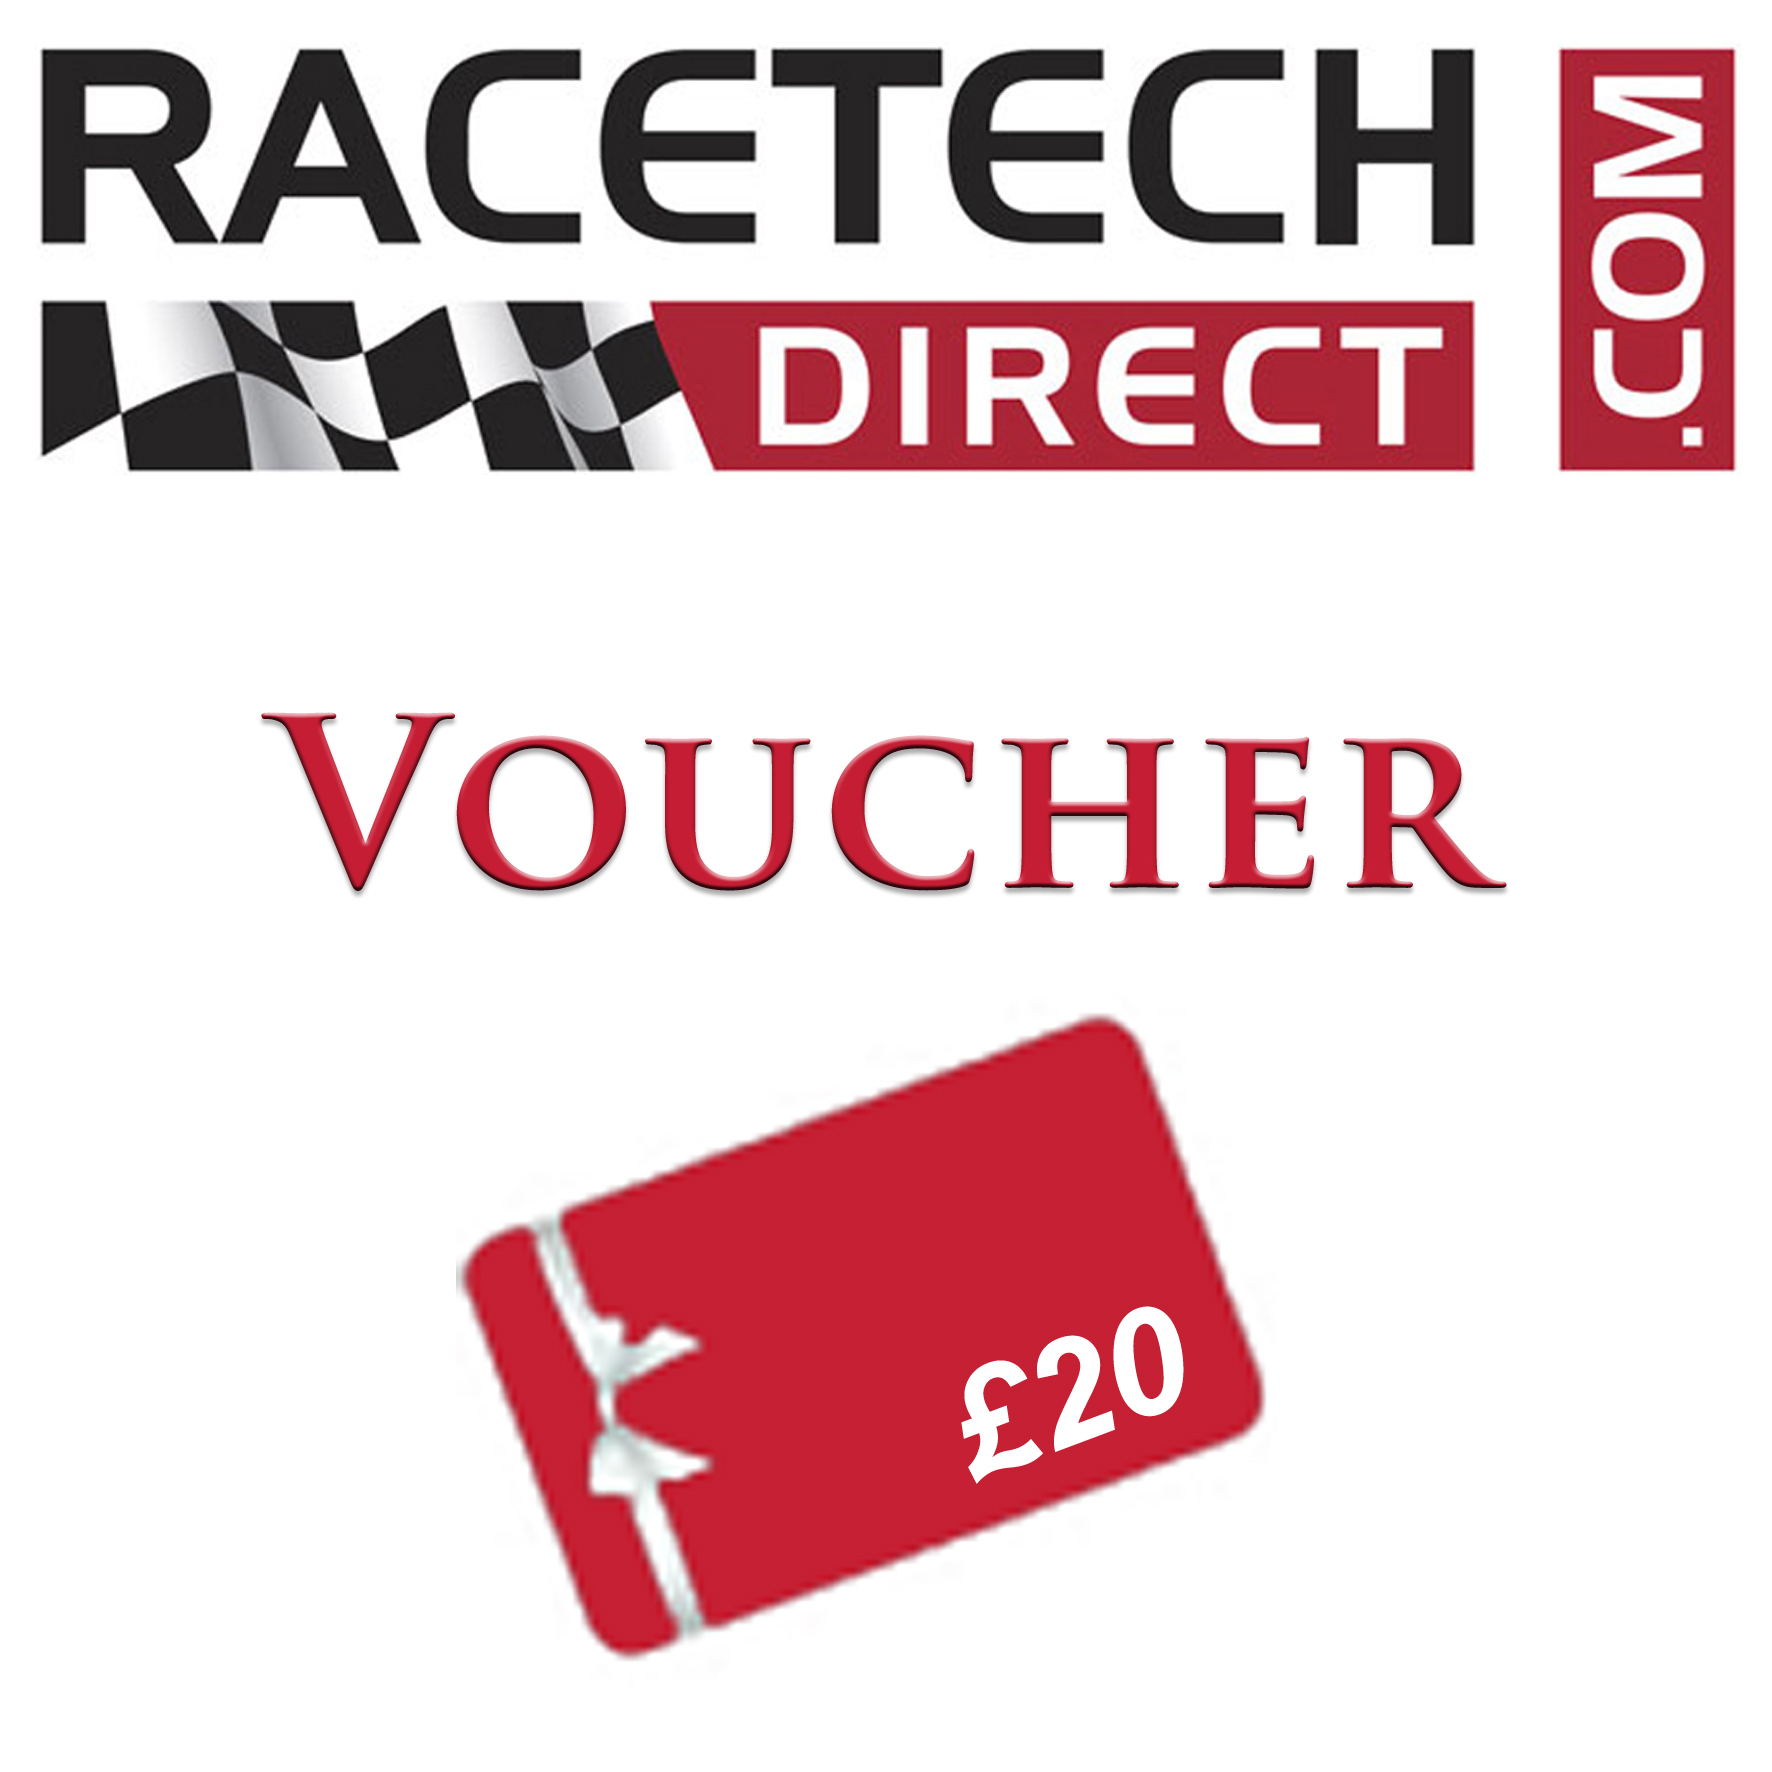 RDGIFT20 Racetech Direct £20 Gift Voucher